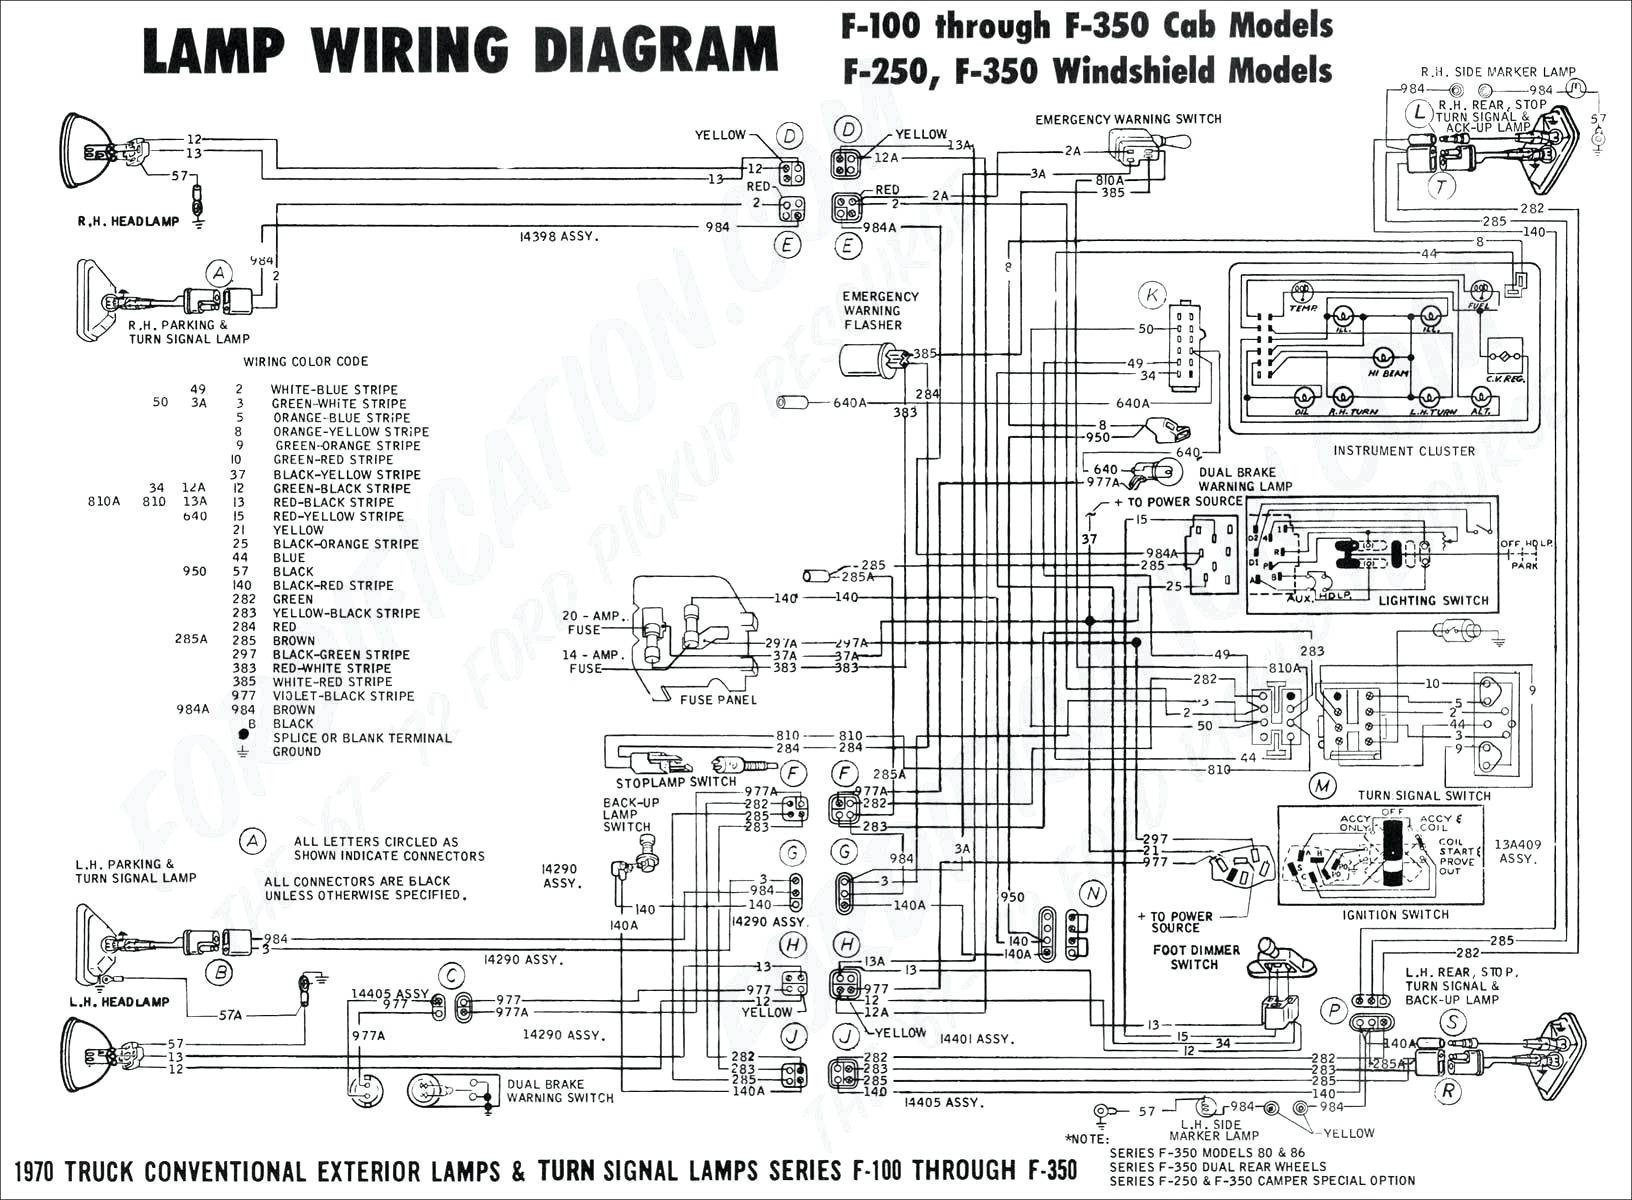 Basic Motorcycle Engine Diagram Honda Ex5500 Wiring Diagram Save Honda Beat Motorcycle Wiring Of Basic Motorcycle Engine Diagram